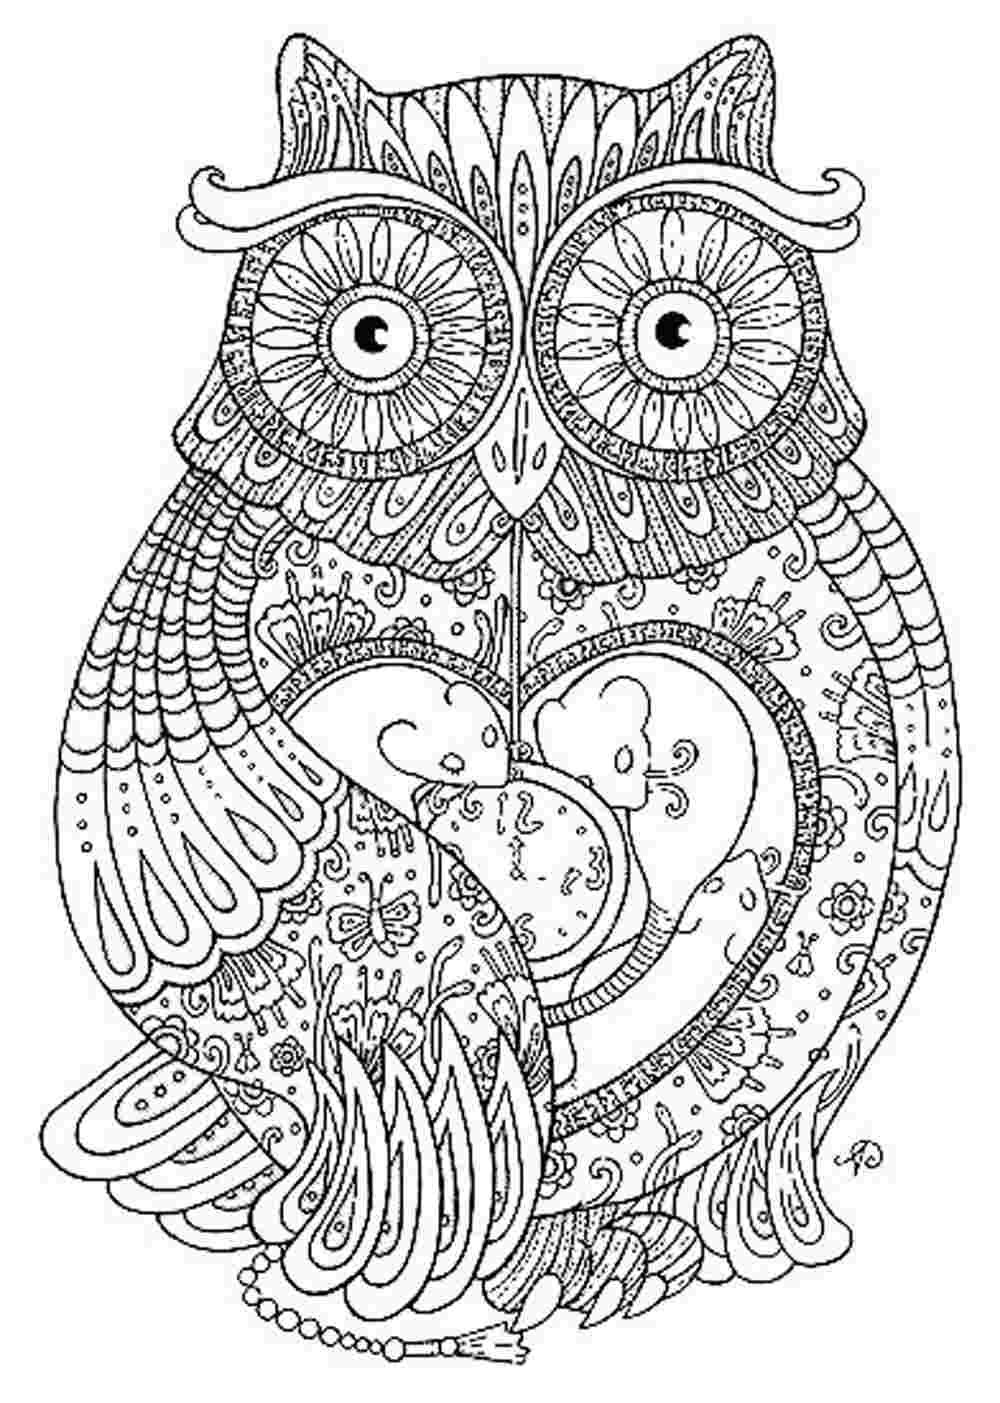 An intricate coloring page for adults featuring aliens - Gallery Of Coloring Pages Adults